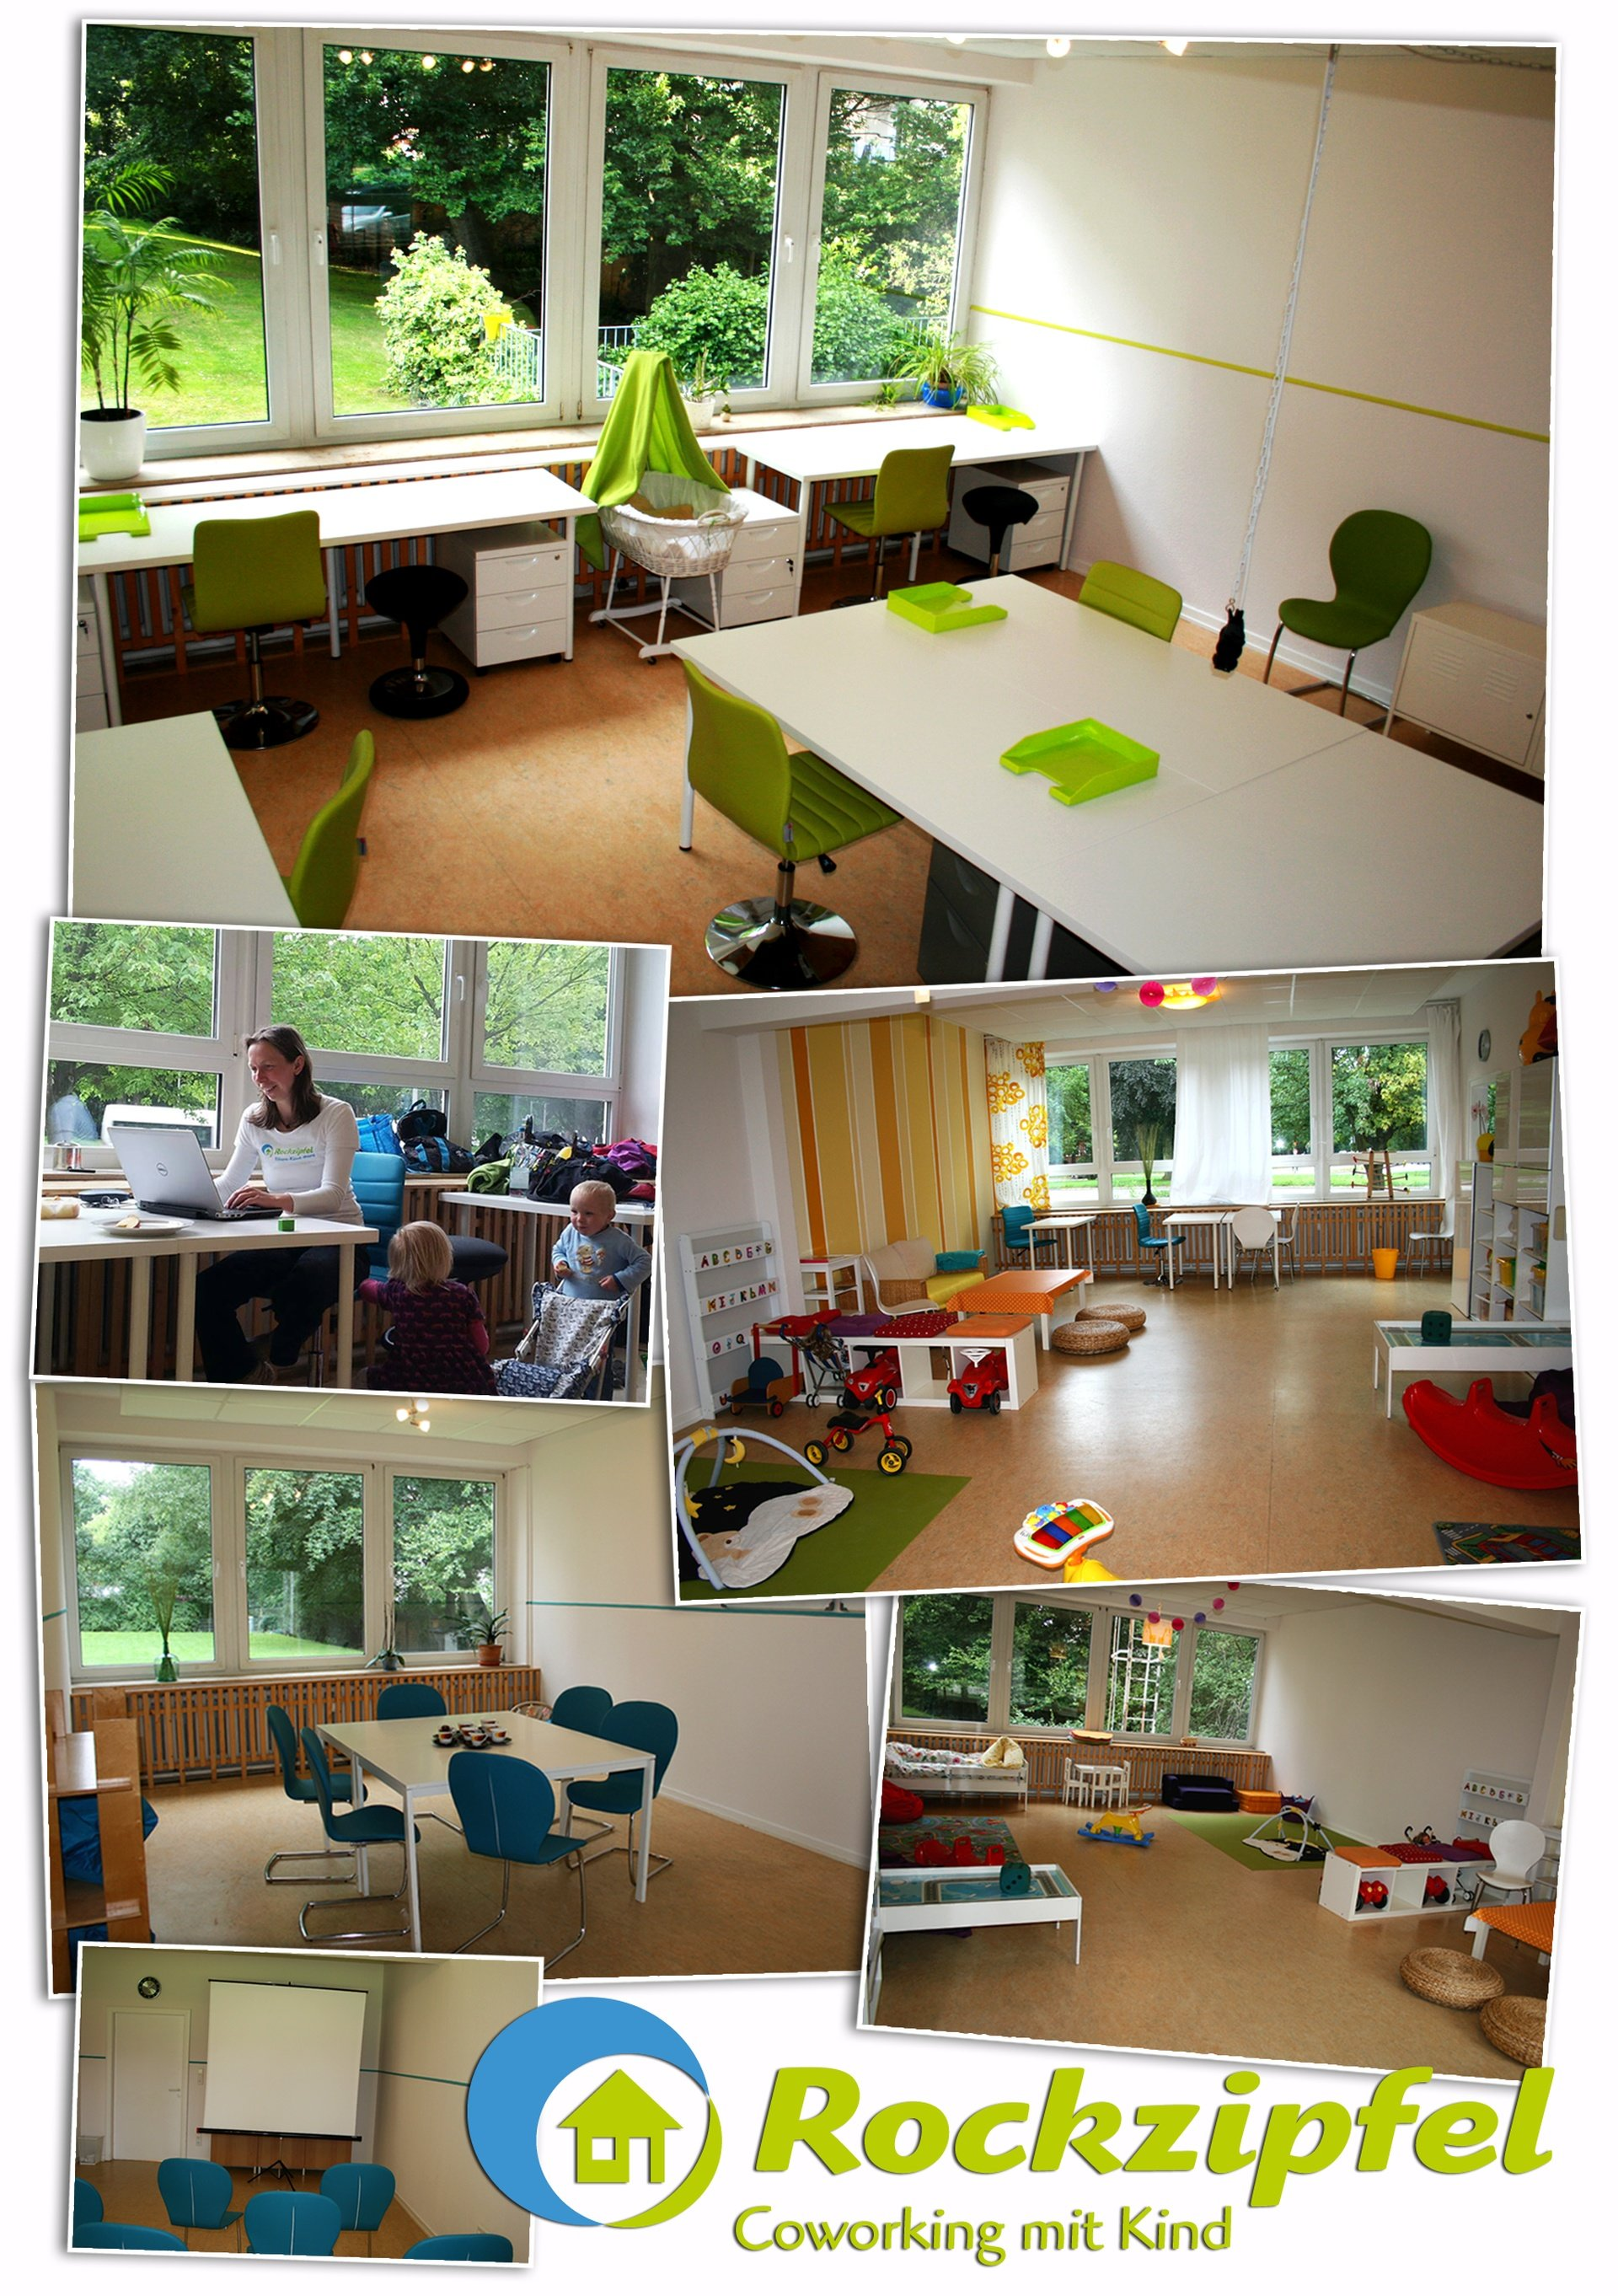 Hamburg training rooms Espace de Coworking Rockzipfel - Coworking with Kids @ Hub3 image 0